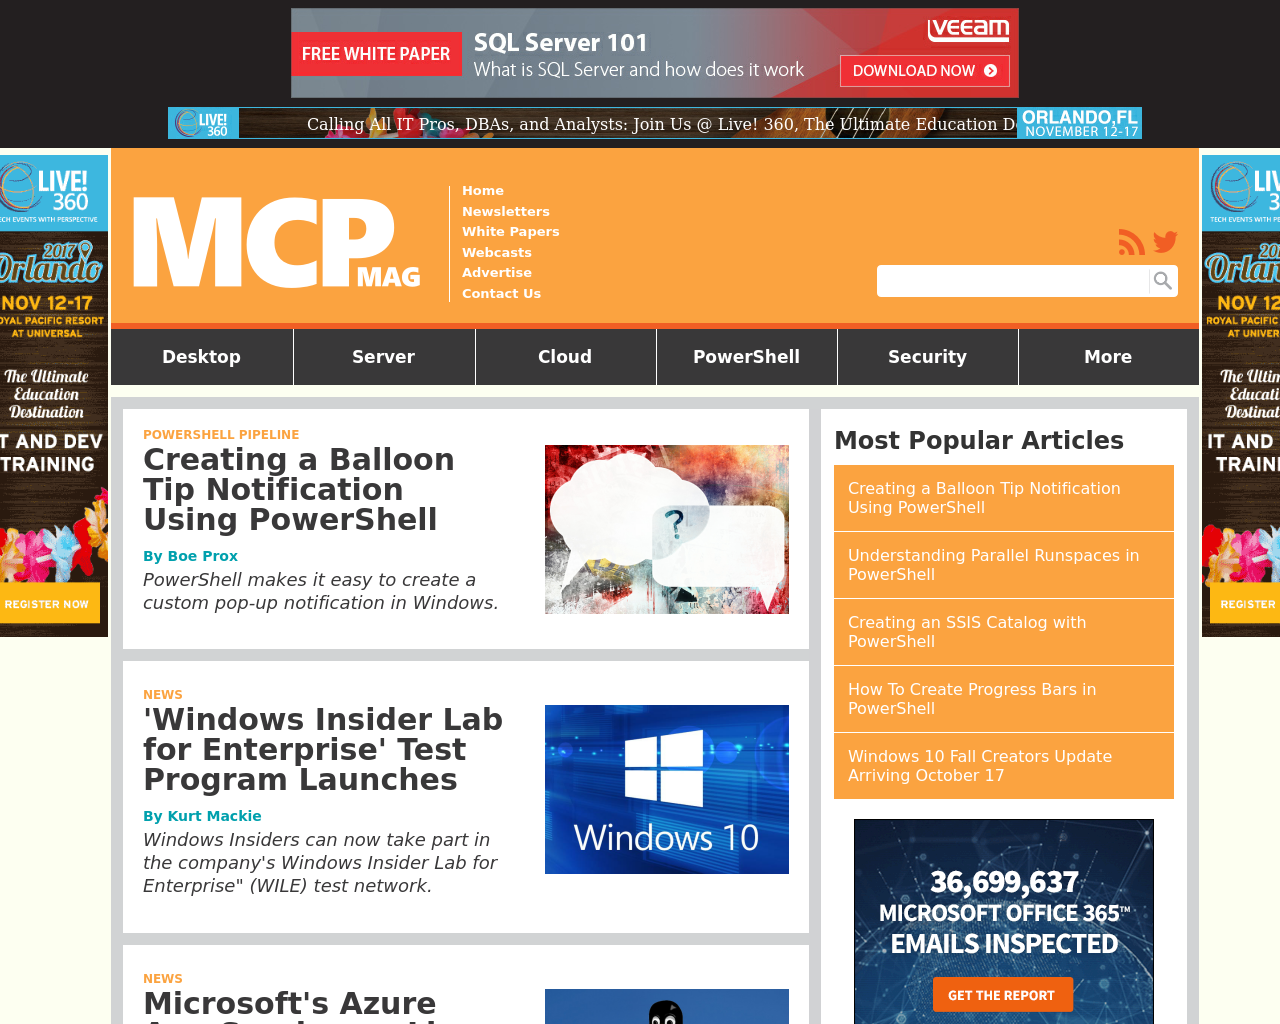 Microsoft-Certified-Professional-Magazine----Online-Advertising-Reviews-Pricing